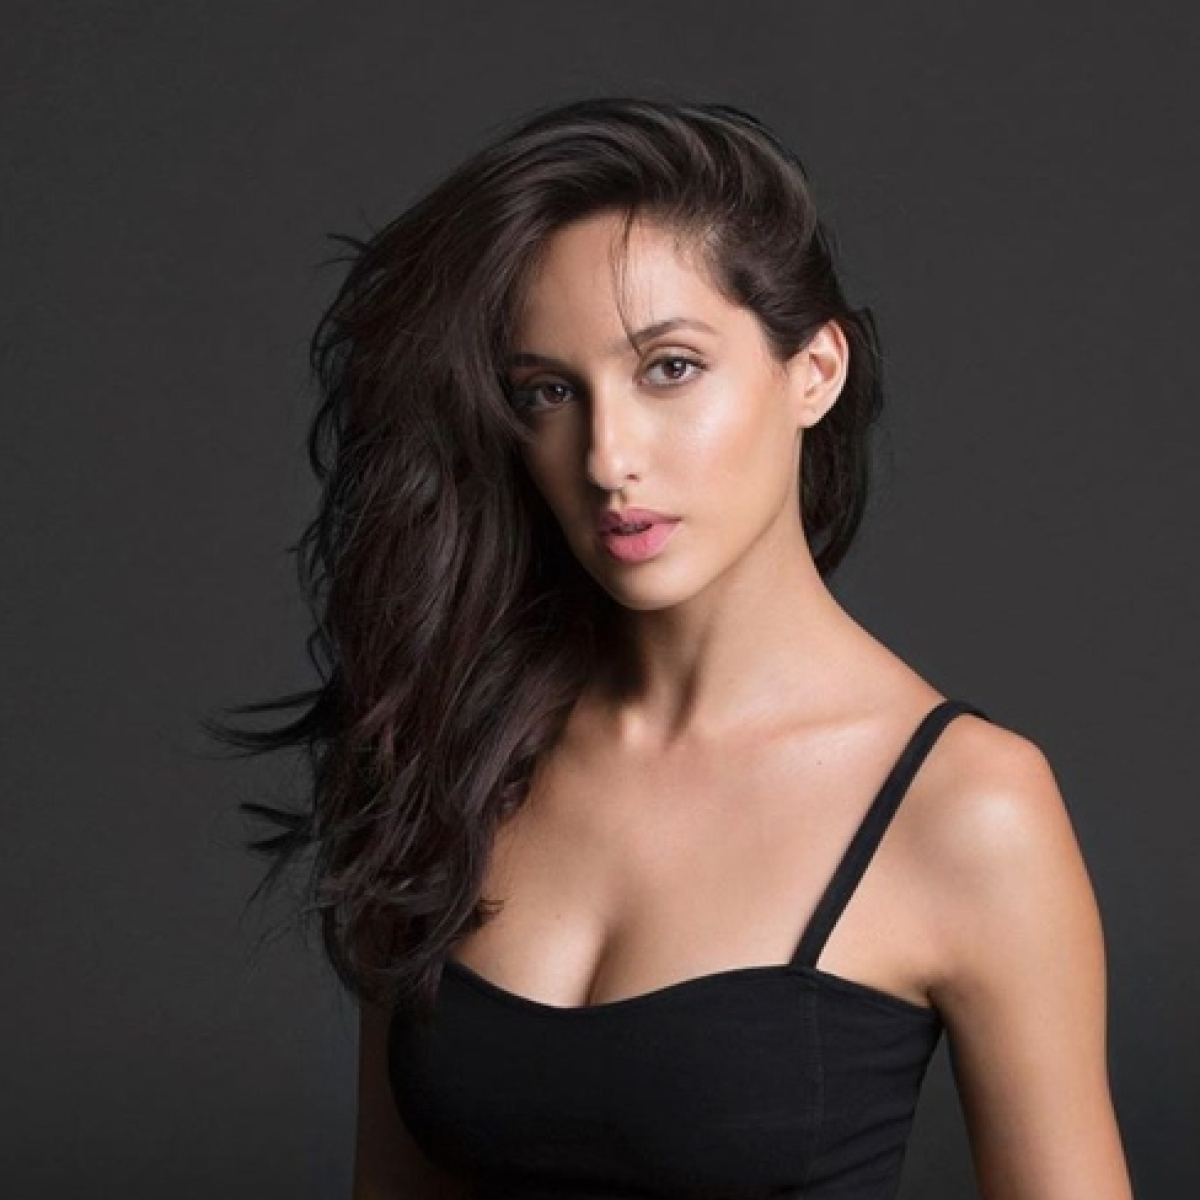 Quarantine diaries: Nora Fatehi's sexy dance video to the song 'Corny' goes viral